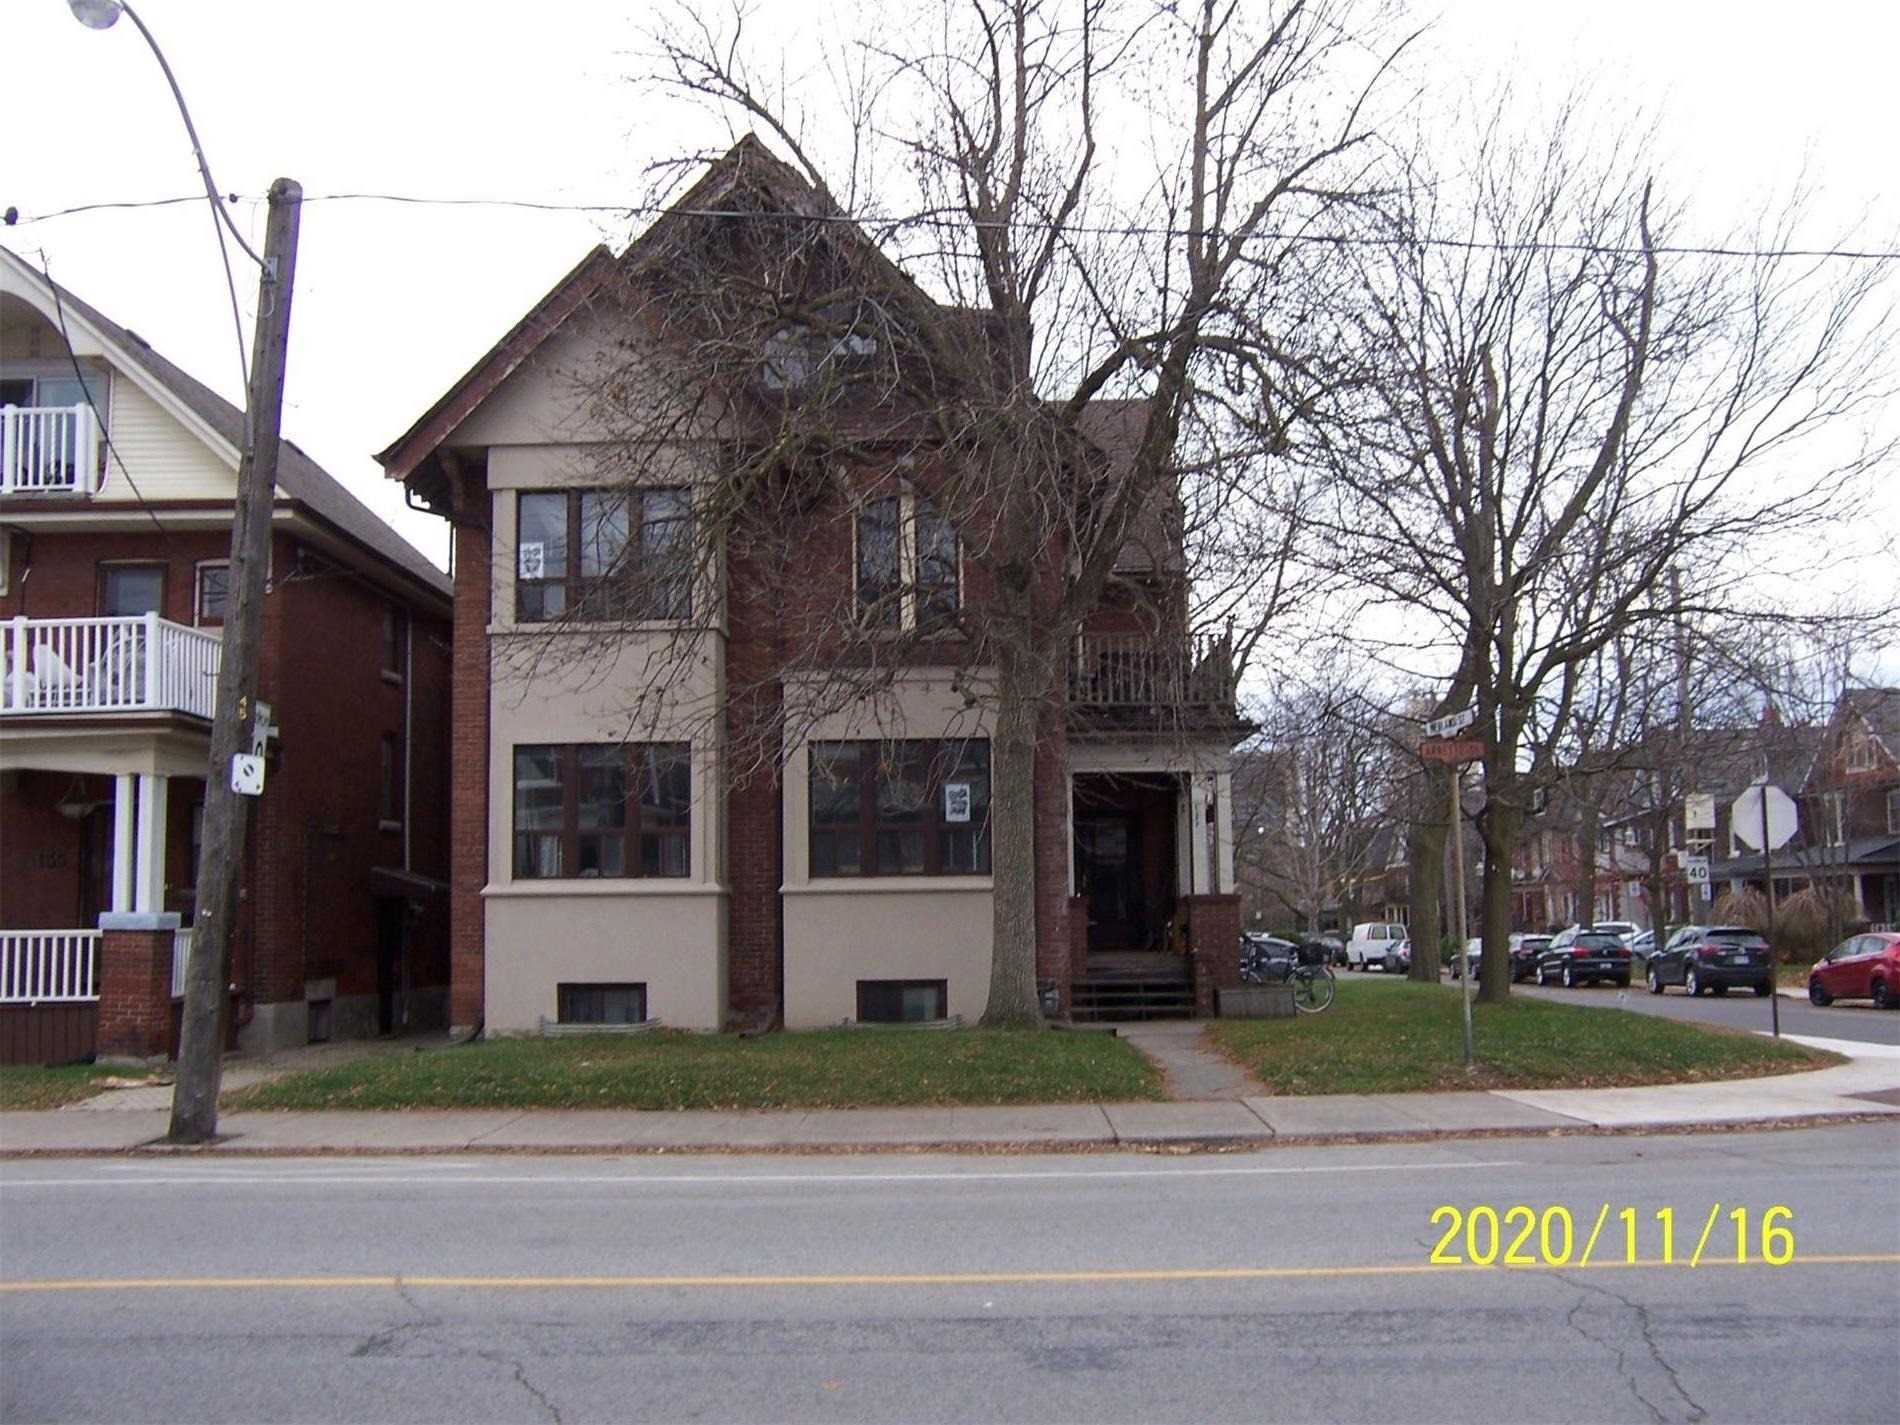 137 Annette St, Toronto, Ontario M6P 1N9, 9 Bedrooms Bedrooms, 23 Rooms Rooms,7 BathroomsBathrooms,Detached,For Sale,Annette,W4994312